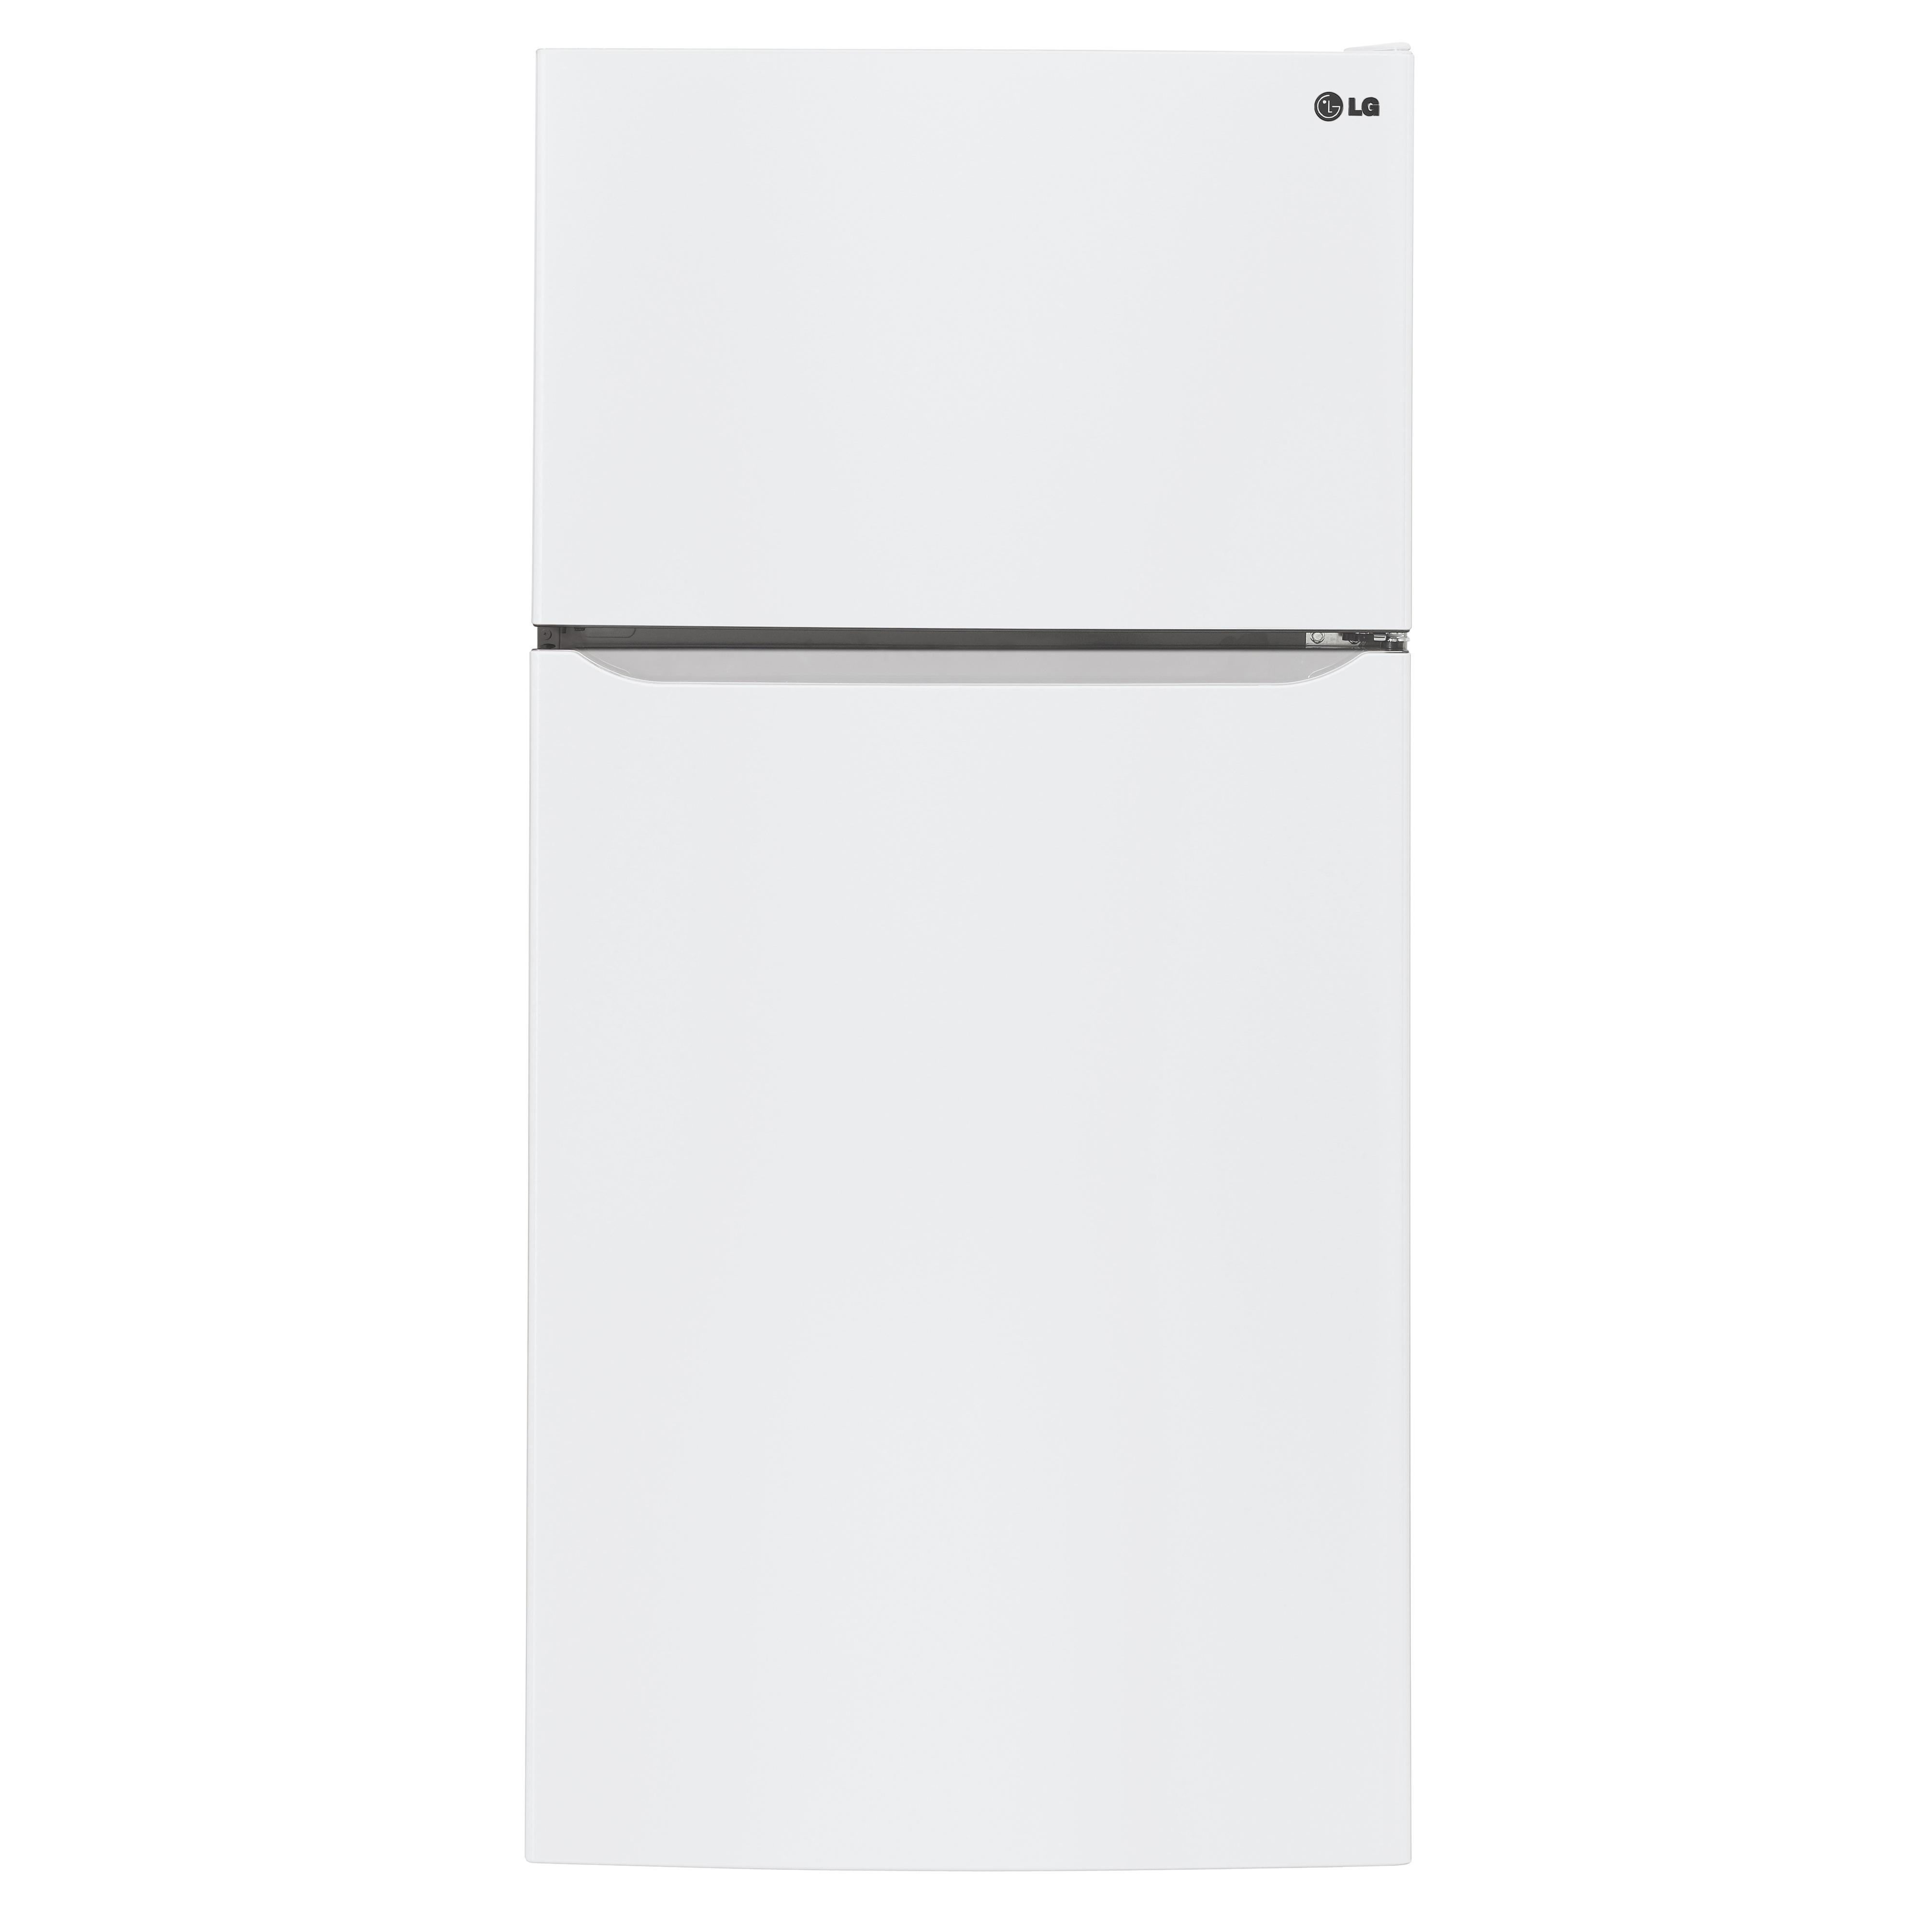 LG Appliances Top-Freezer Refrigerator 20 cu. ft. Wide Top Freezer Refrigerator - Item Number: LTCS20220W